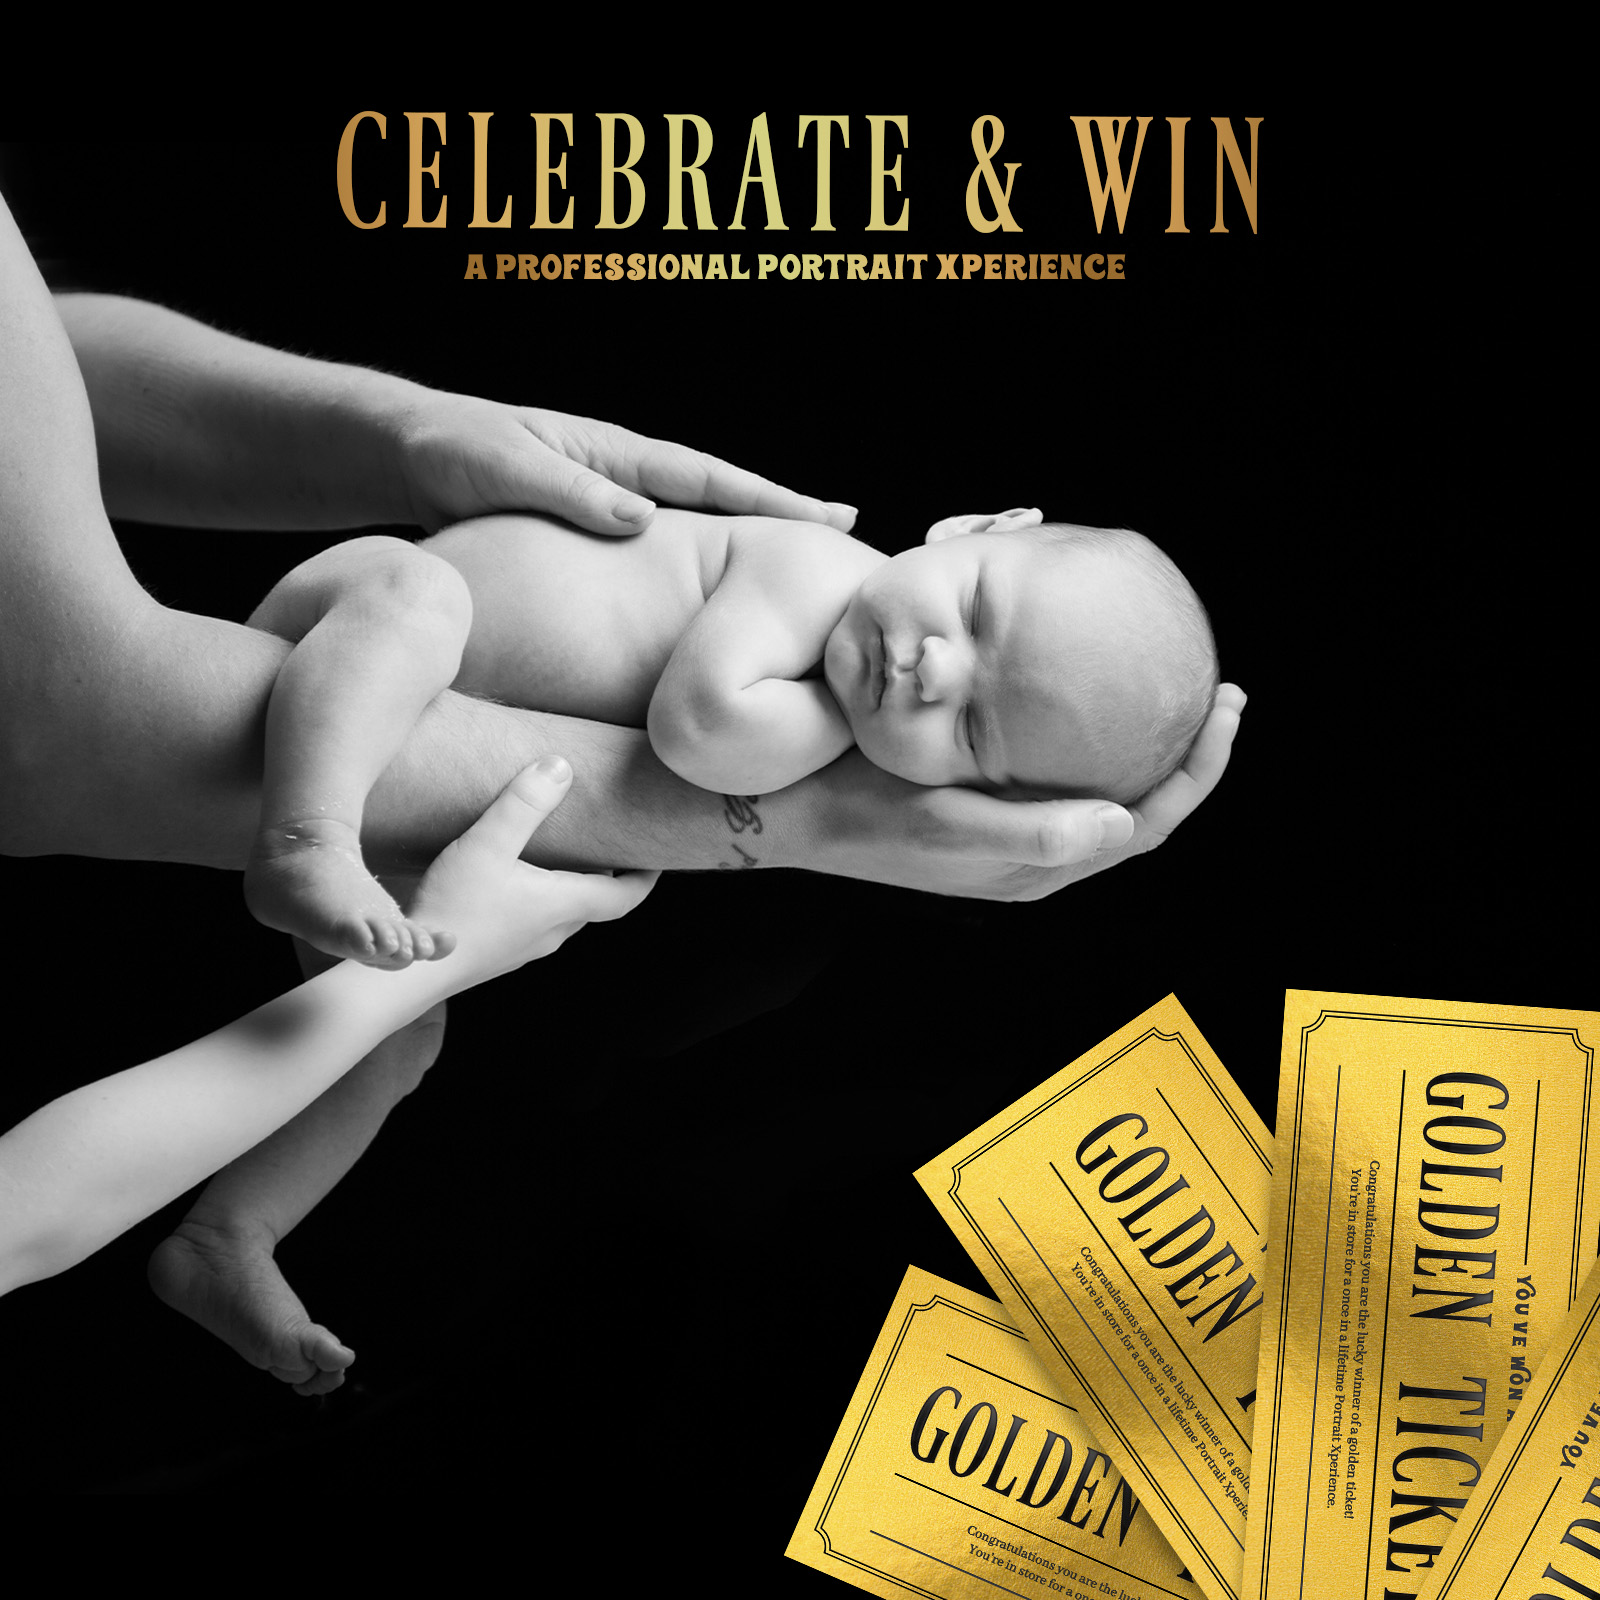 Celebrate & Win Golden Ticket